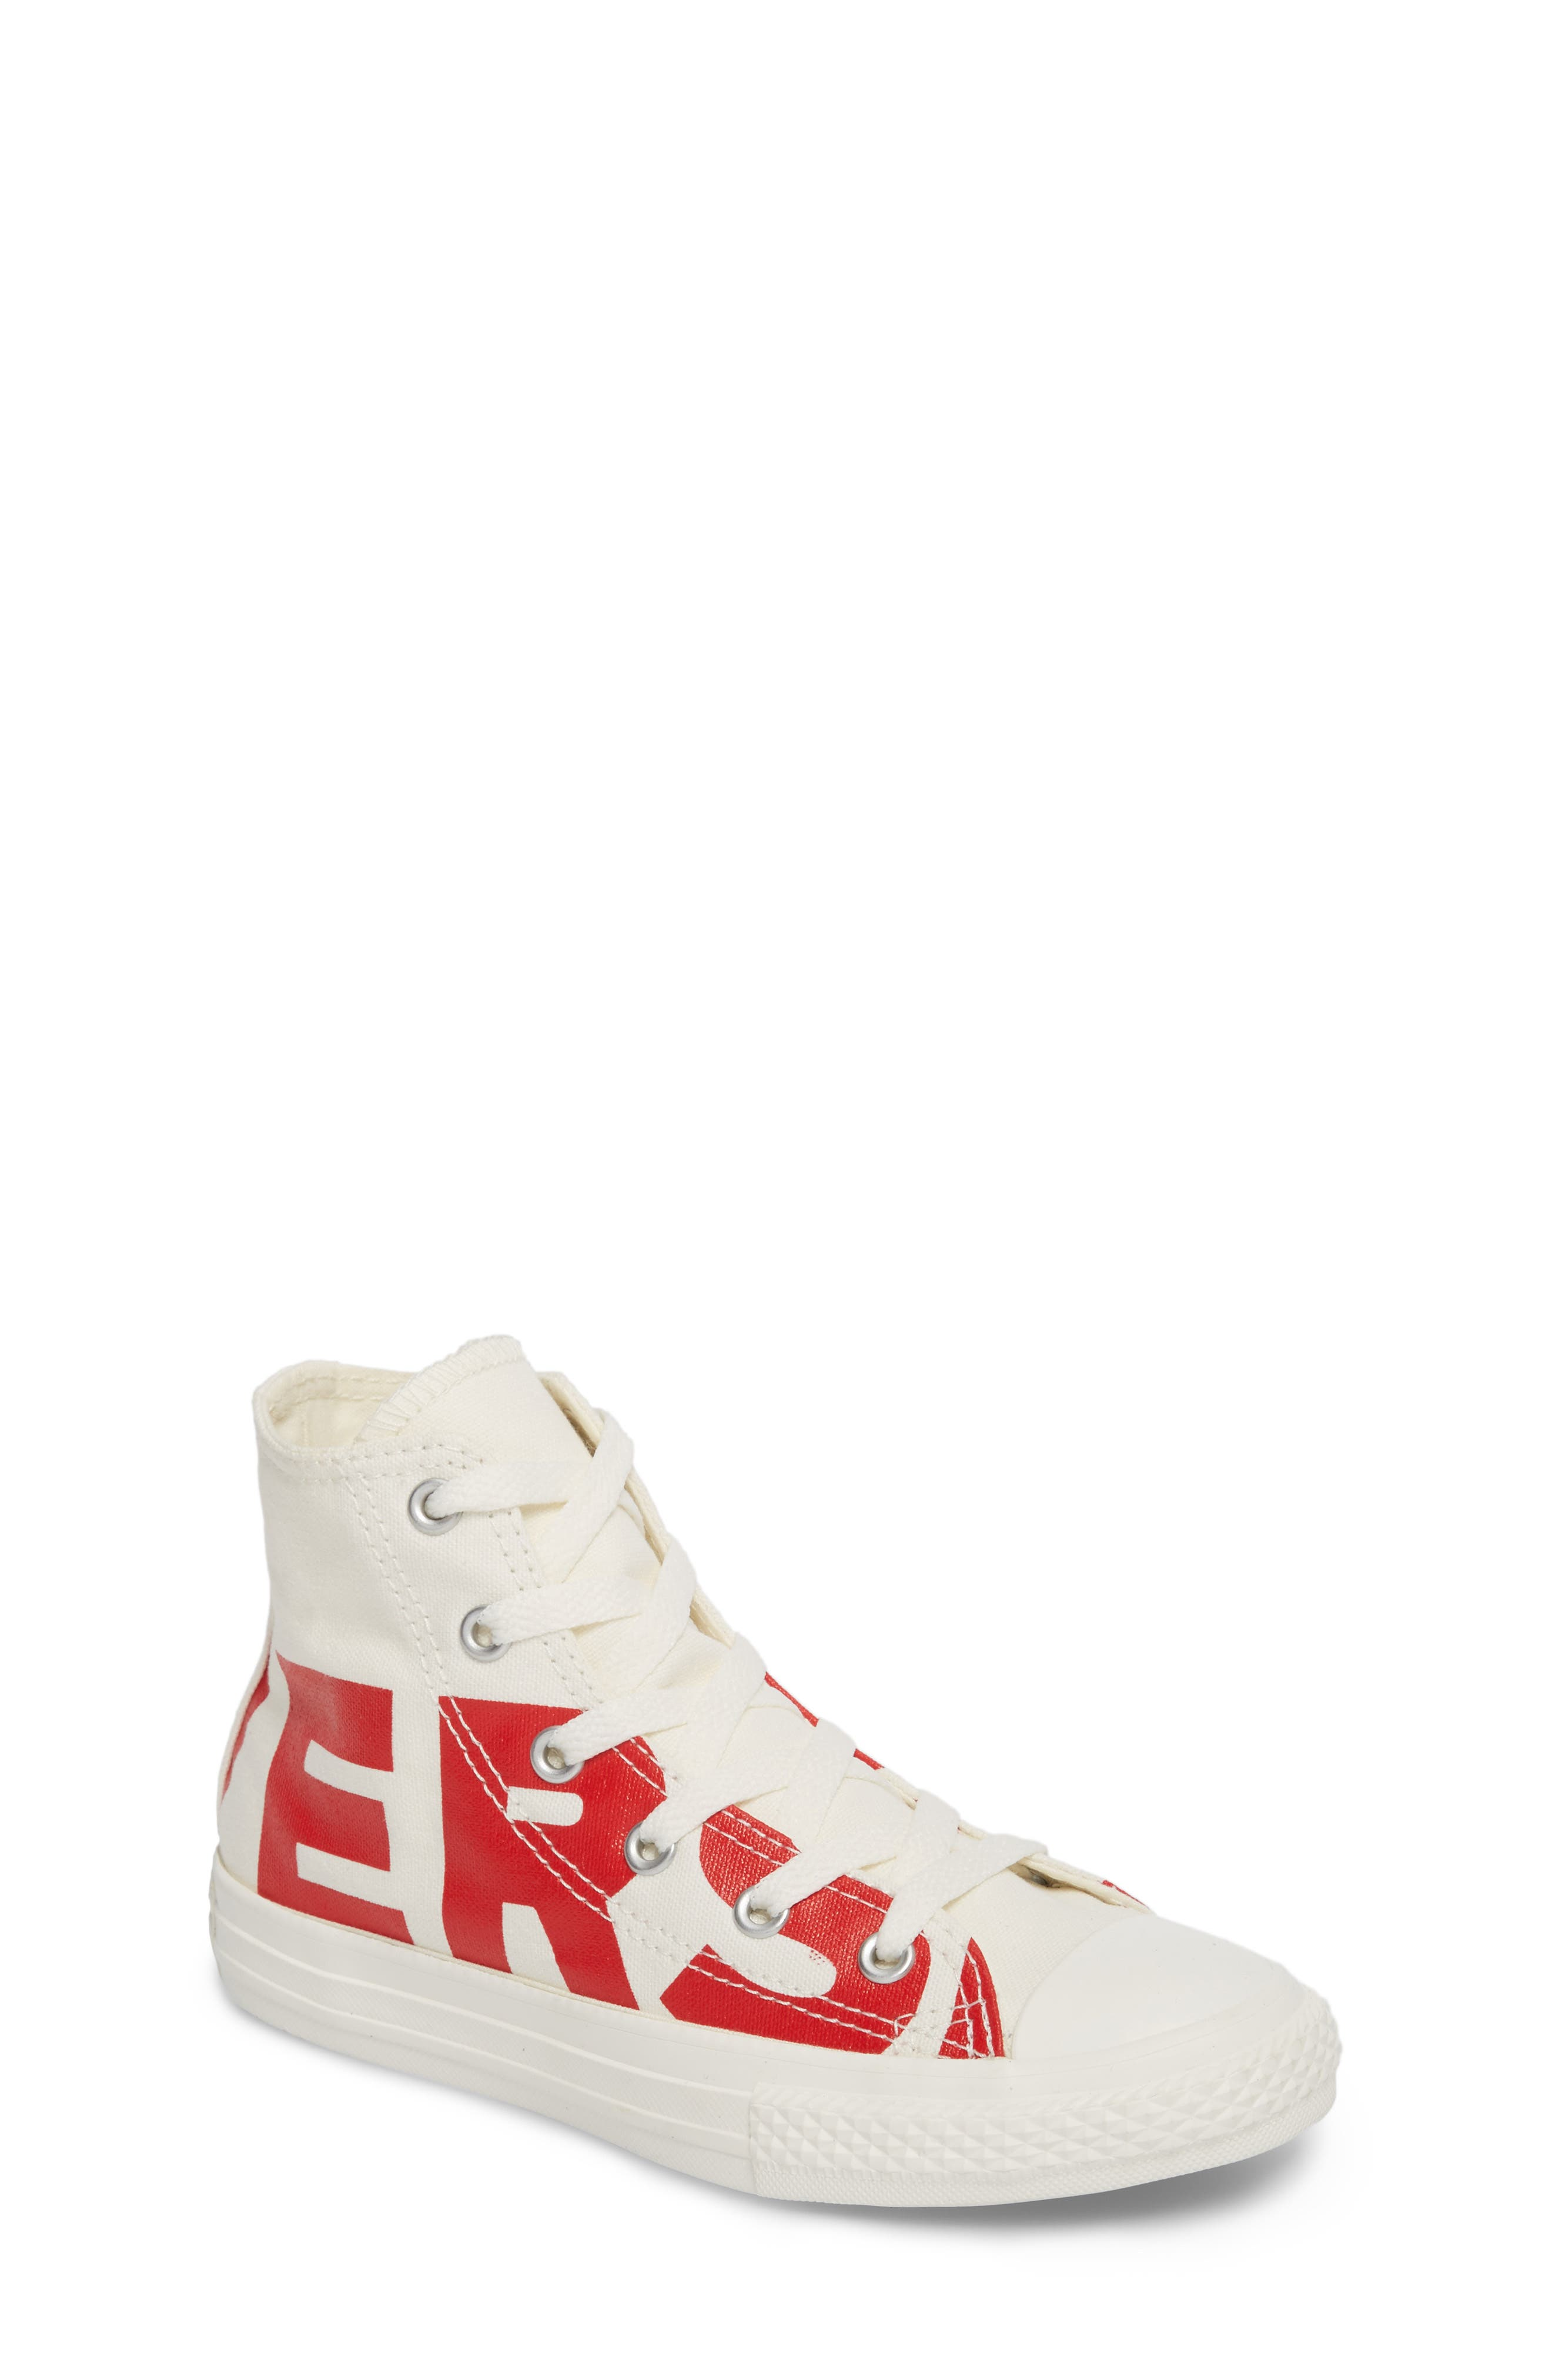 Chuck Taylor<sup>®</sup> All Star<sup>®</sup> Wordmark Hi Sneaker,                             Main thumbnail 1, color,                             Enamel Red